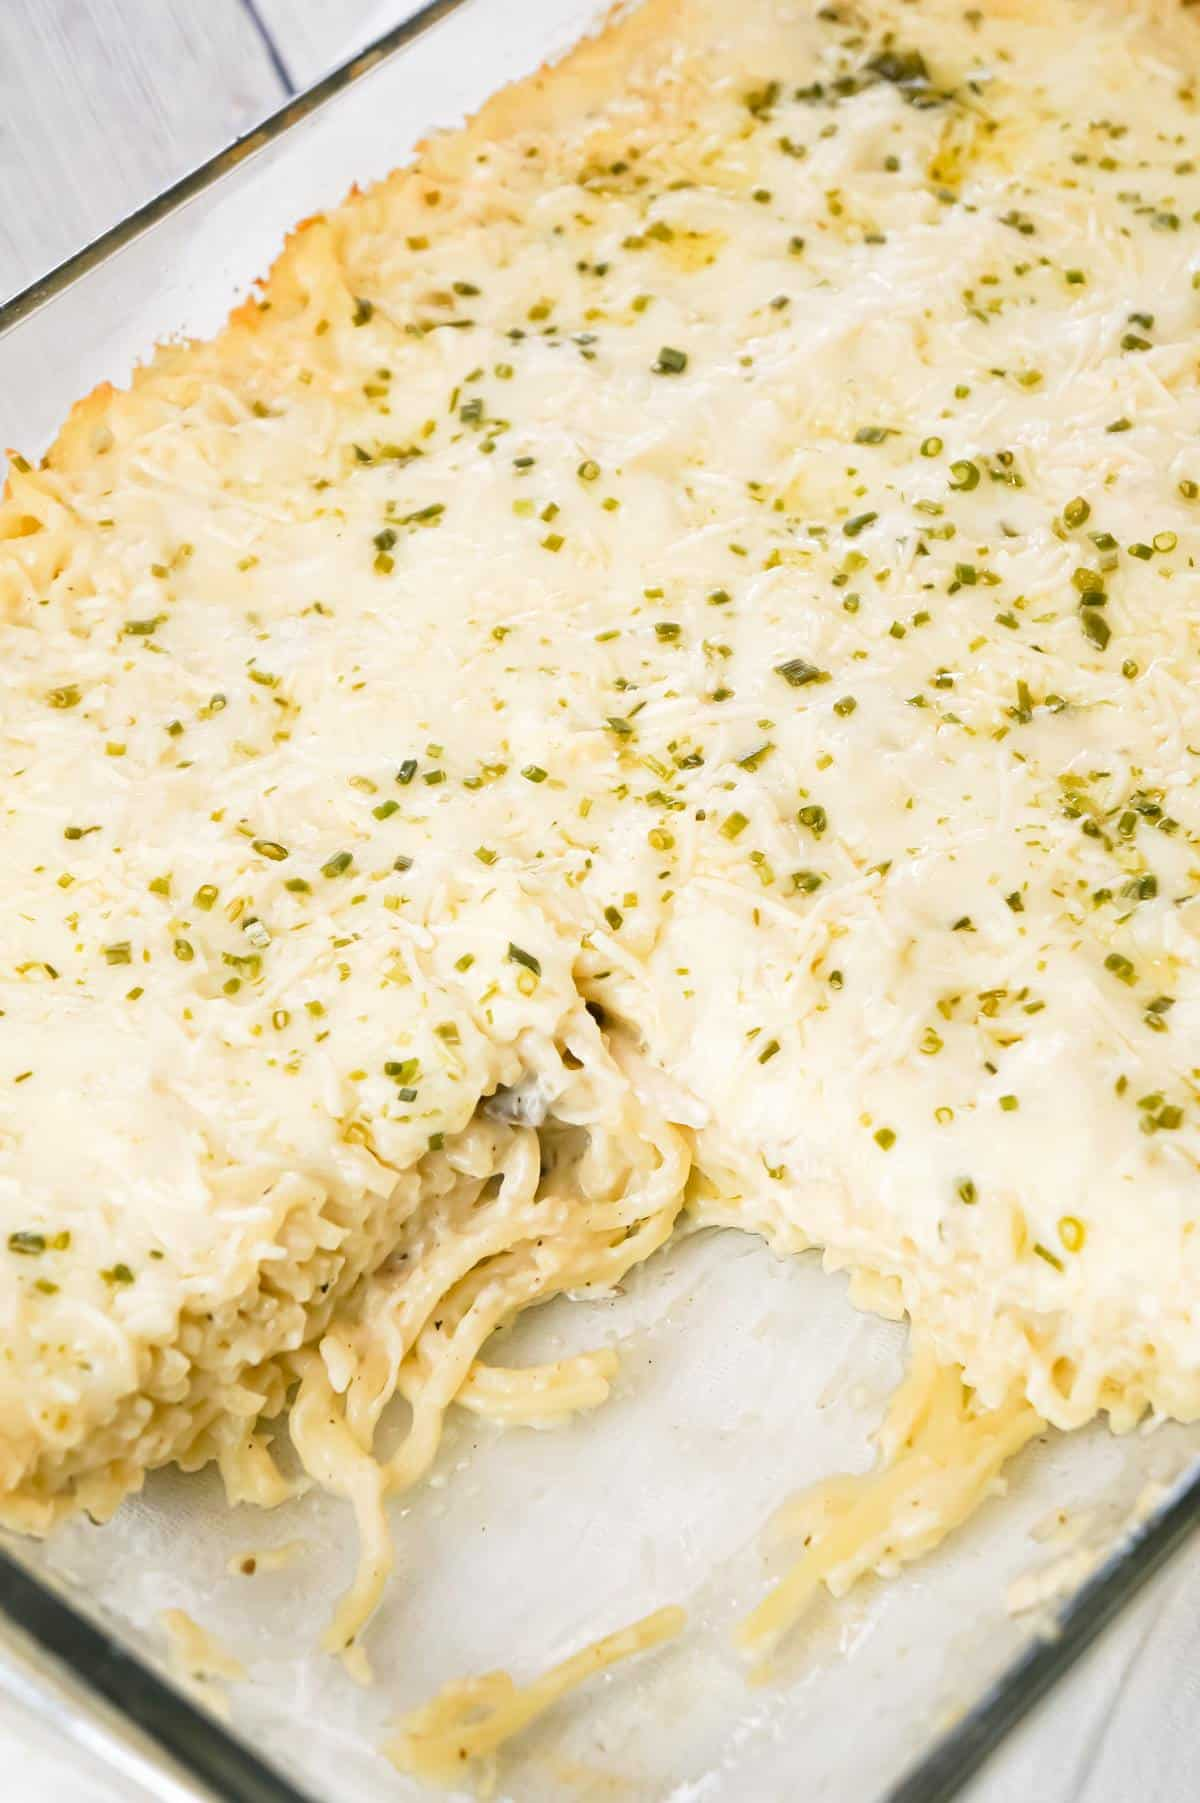 Chicken Tetrazzini is a creamy baked pasta dish loaded with shredded chicken, Parmesan and Mozzarella cheese.